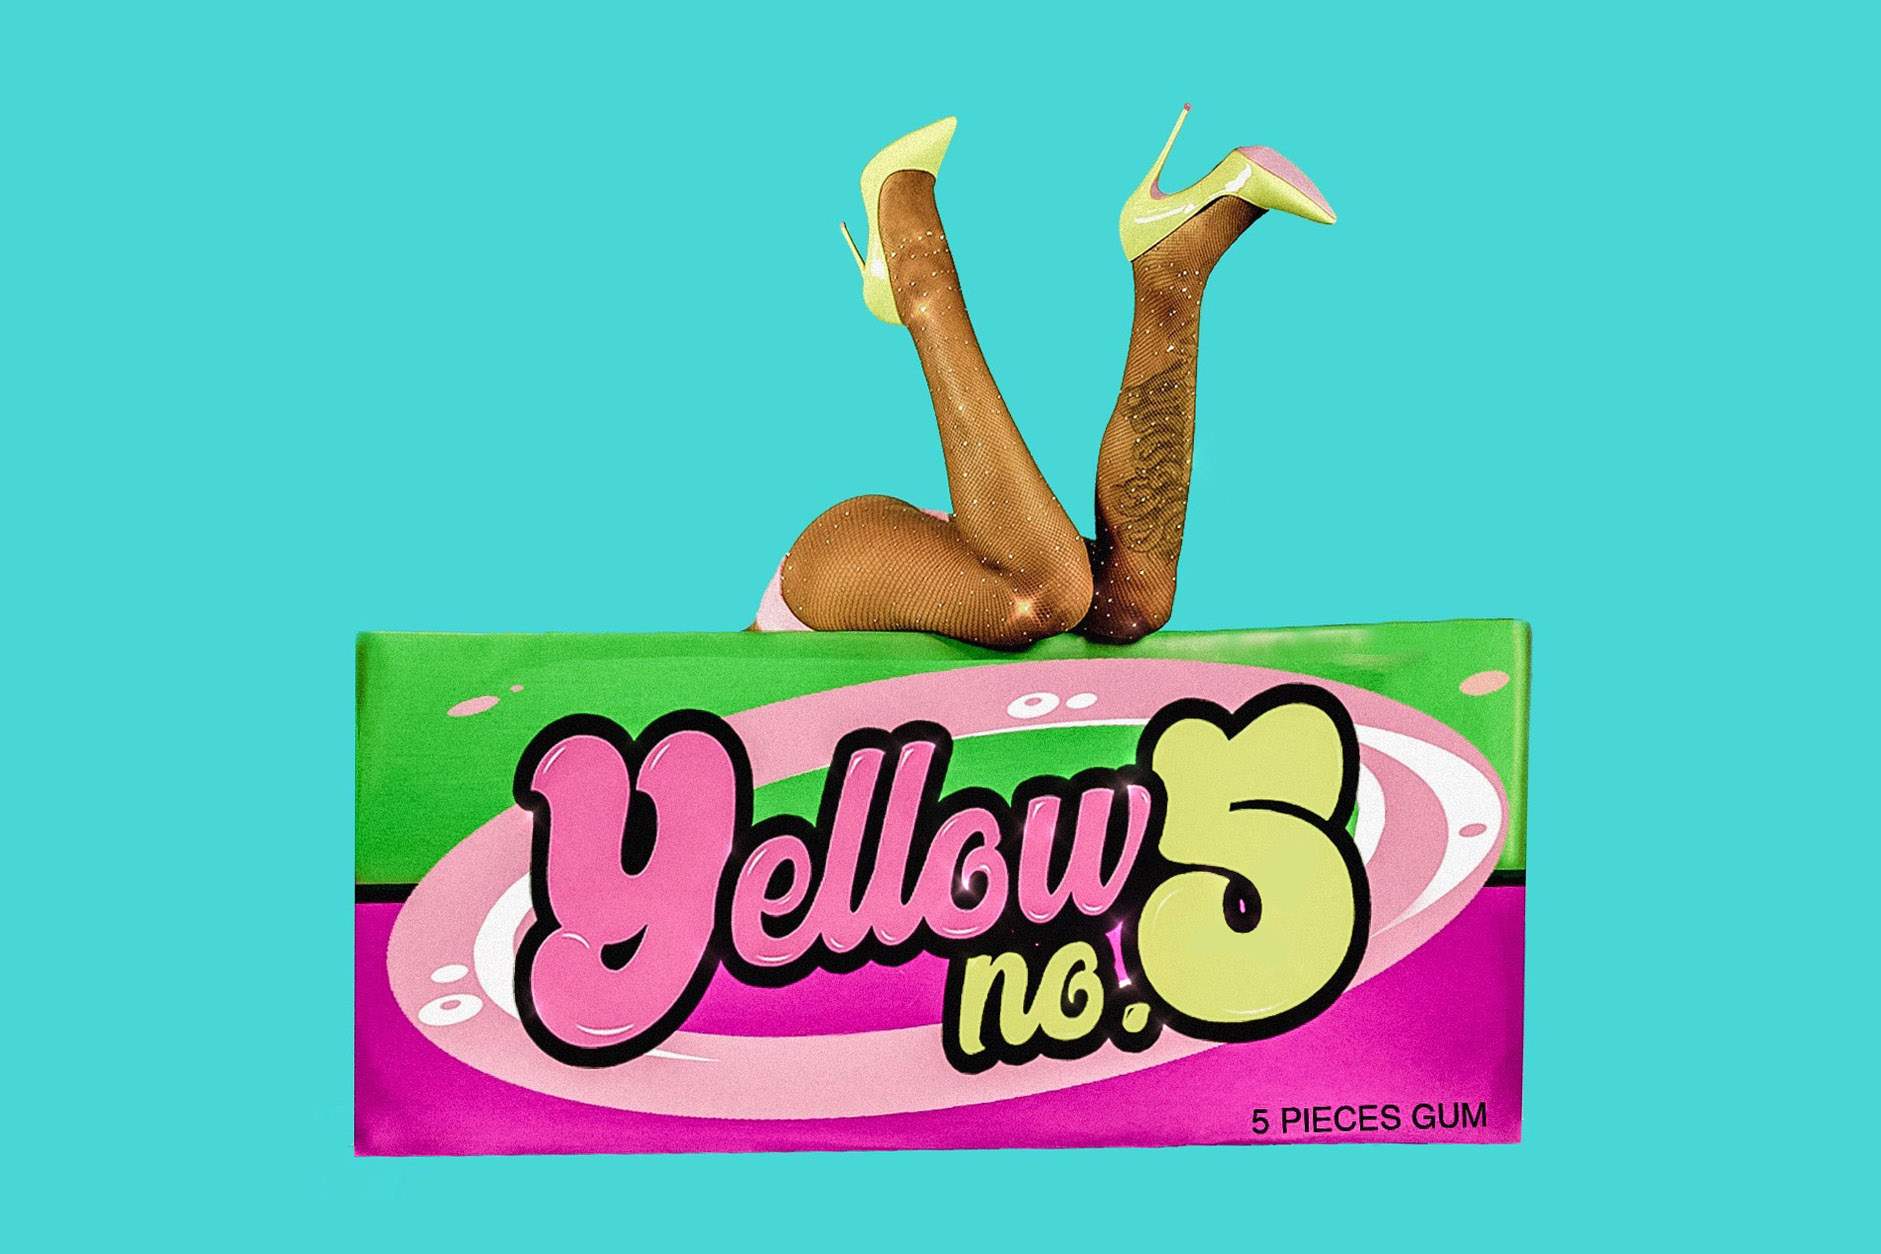 "A box of gum floats on a bright turquoise background. The gum label reads ""Yellow No. 5"" in pink and yellow, fluffy, cursive font with a black outline. The background of the box is pink and green. Svelte legs in sparkly fishnet stockings and pastel yellow stilettos rest upside down on the top of the box. The torso and rest of the person's body disappear behind the box."